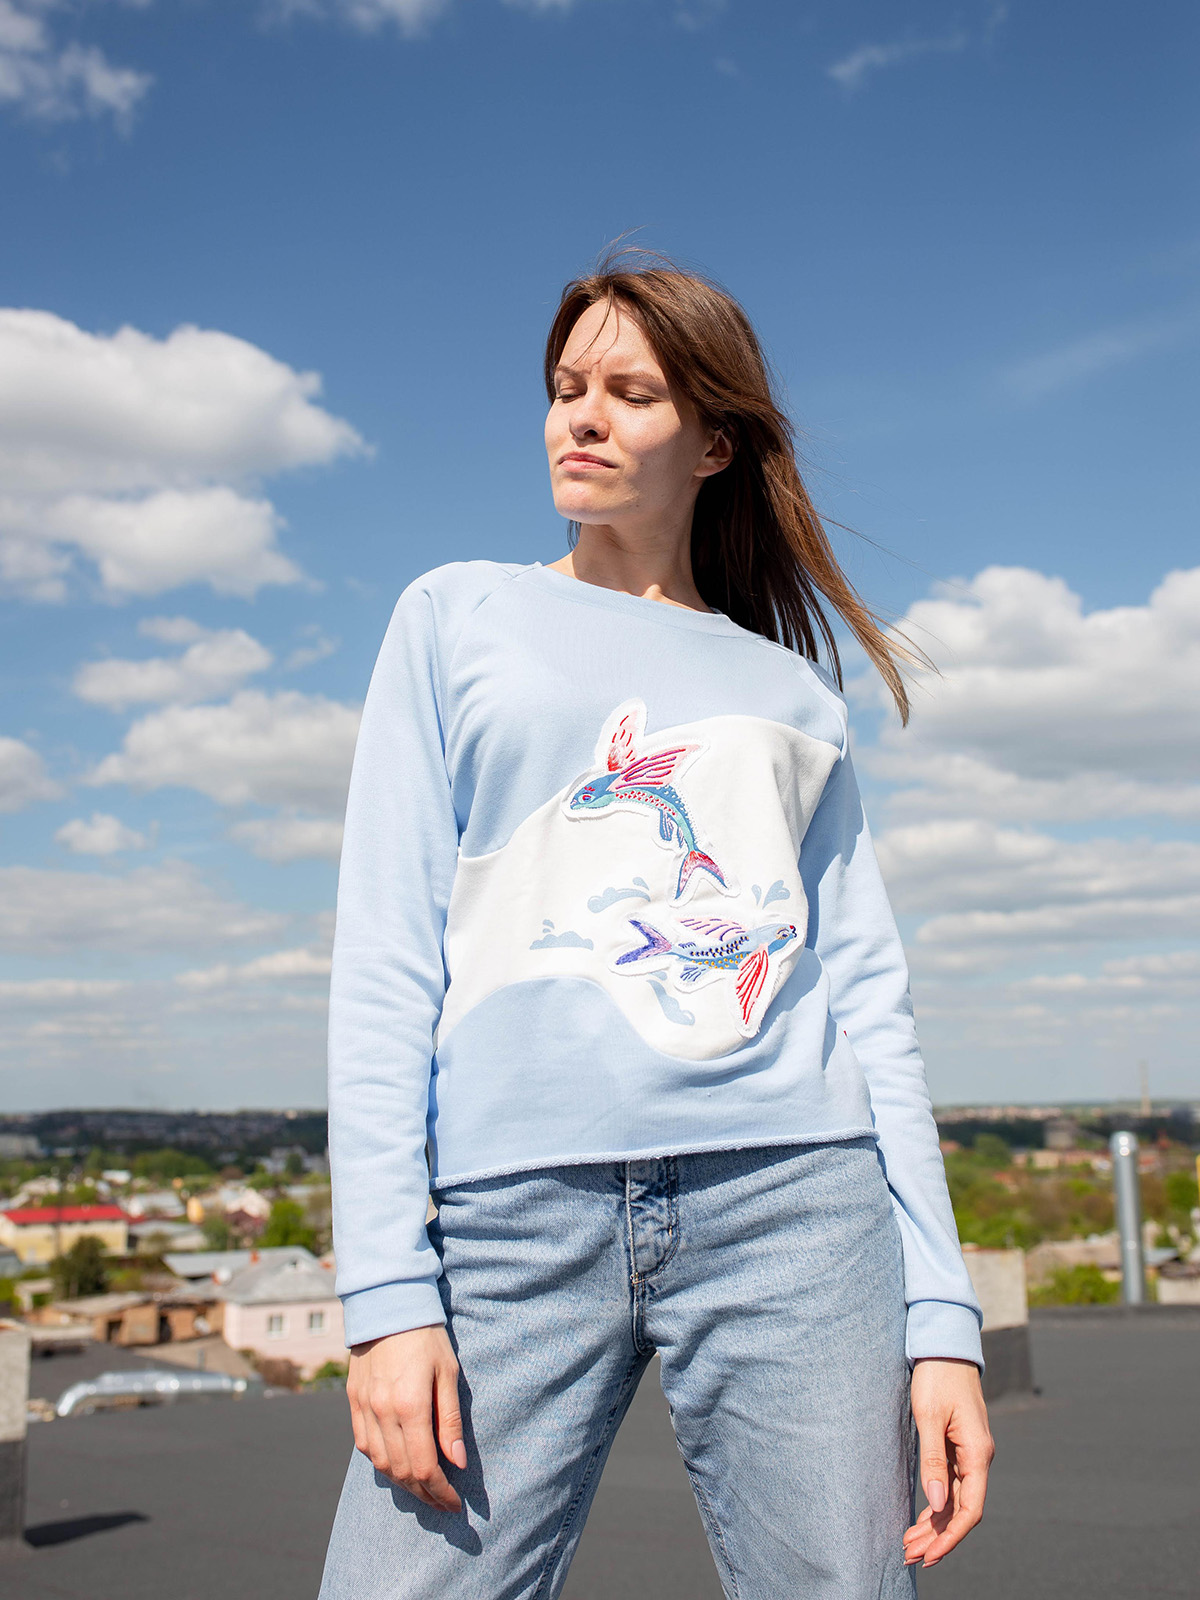 Women's Sweatshirt Flying Fishes. Color sky blue.  Size worn by the model: S.